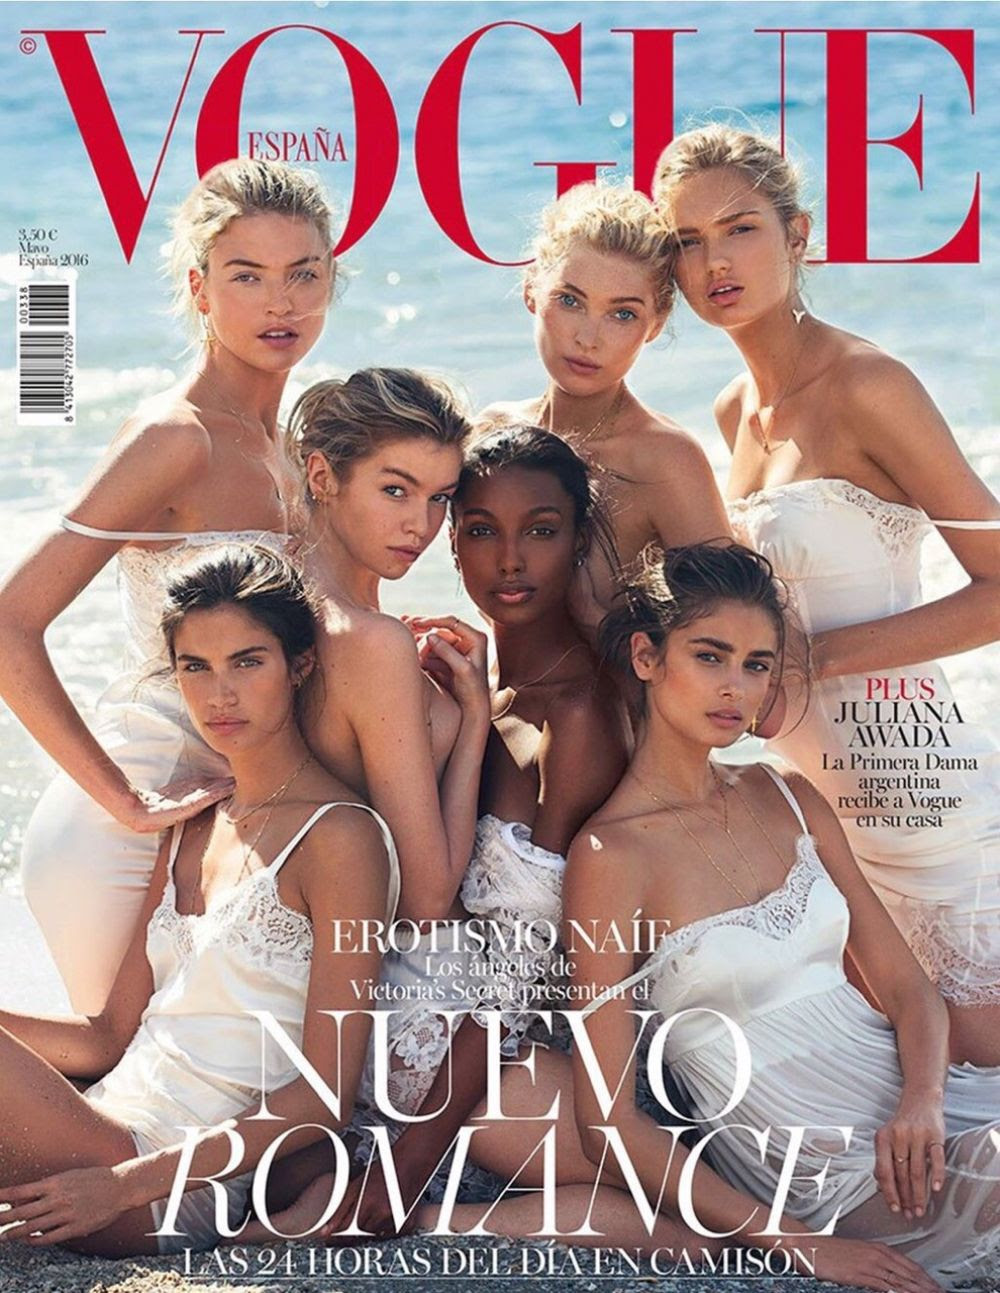 VS Angels in Vogue Magazine, Spain May 2016 Issue